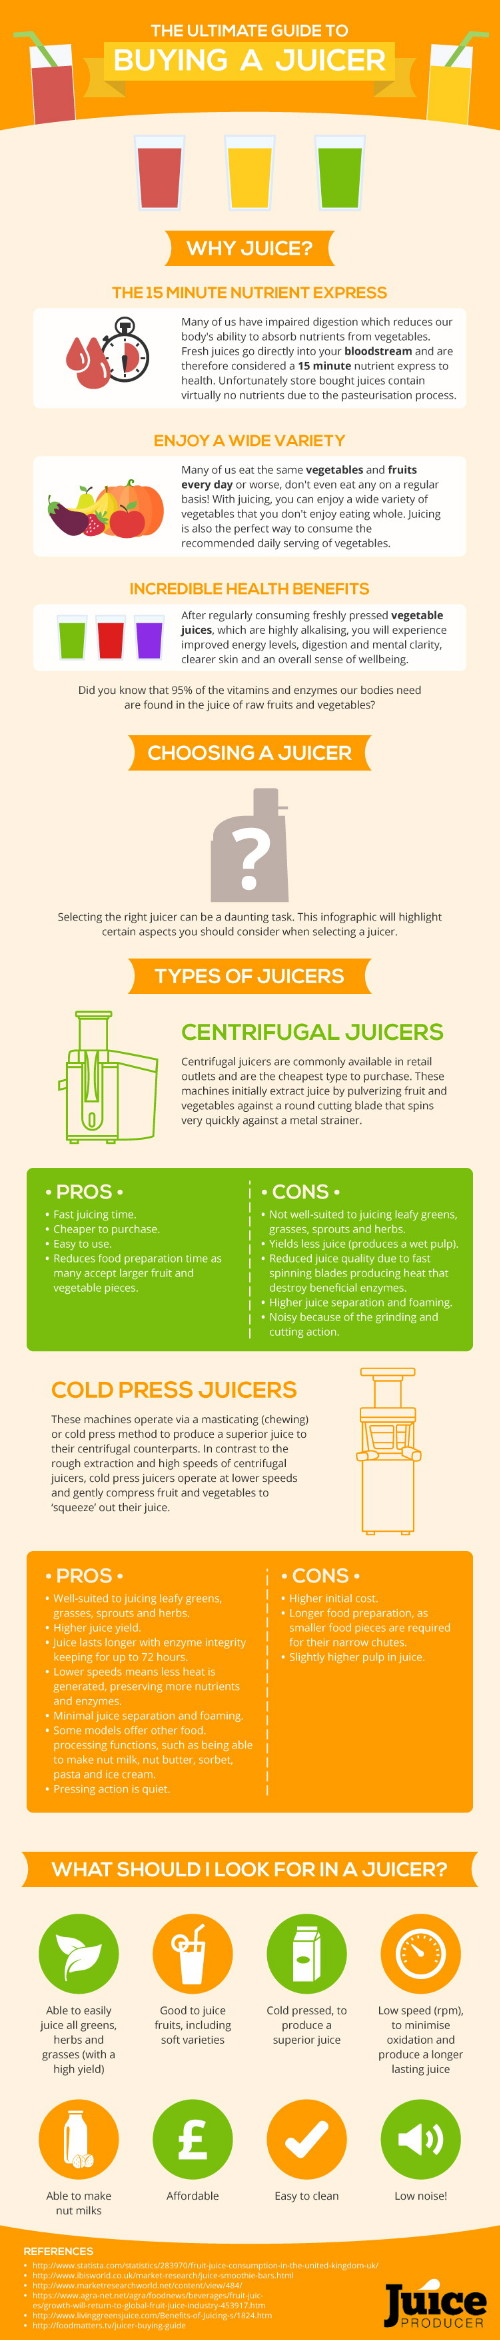 The Ultimate Guide to Buying a Juicer infographic